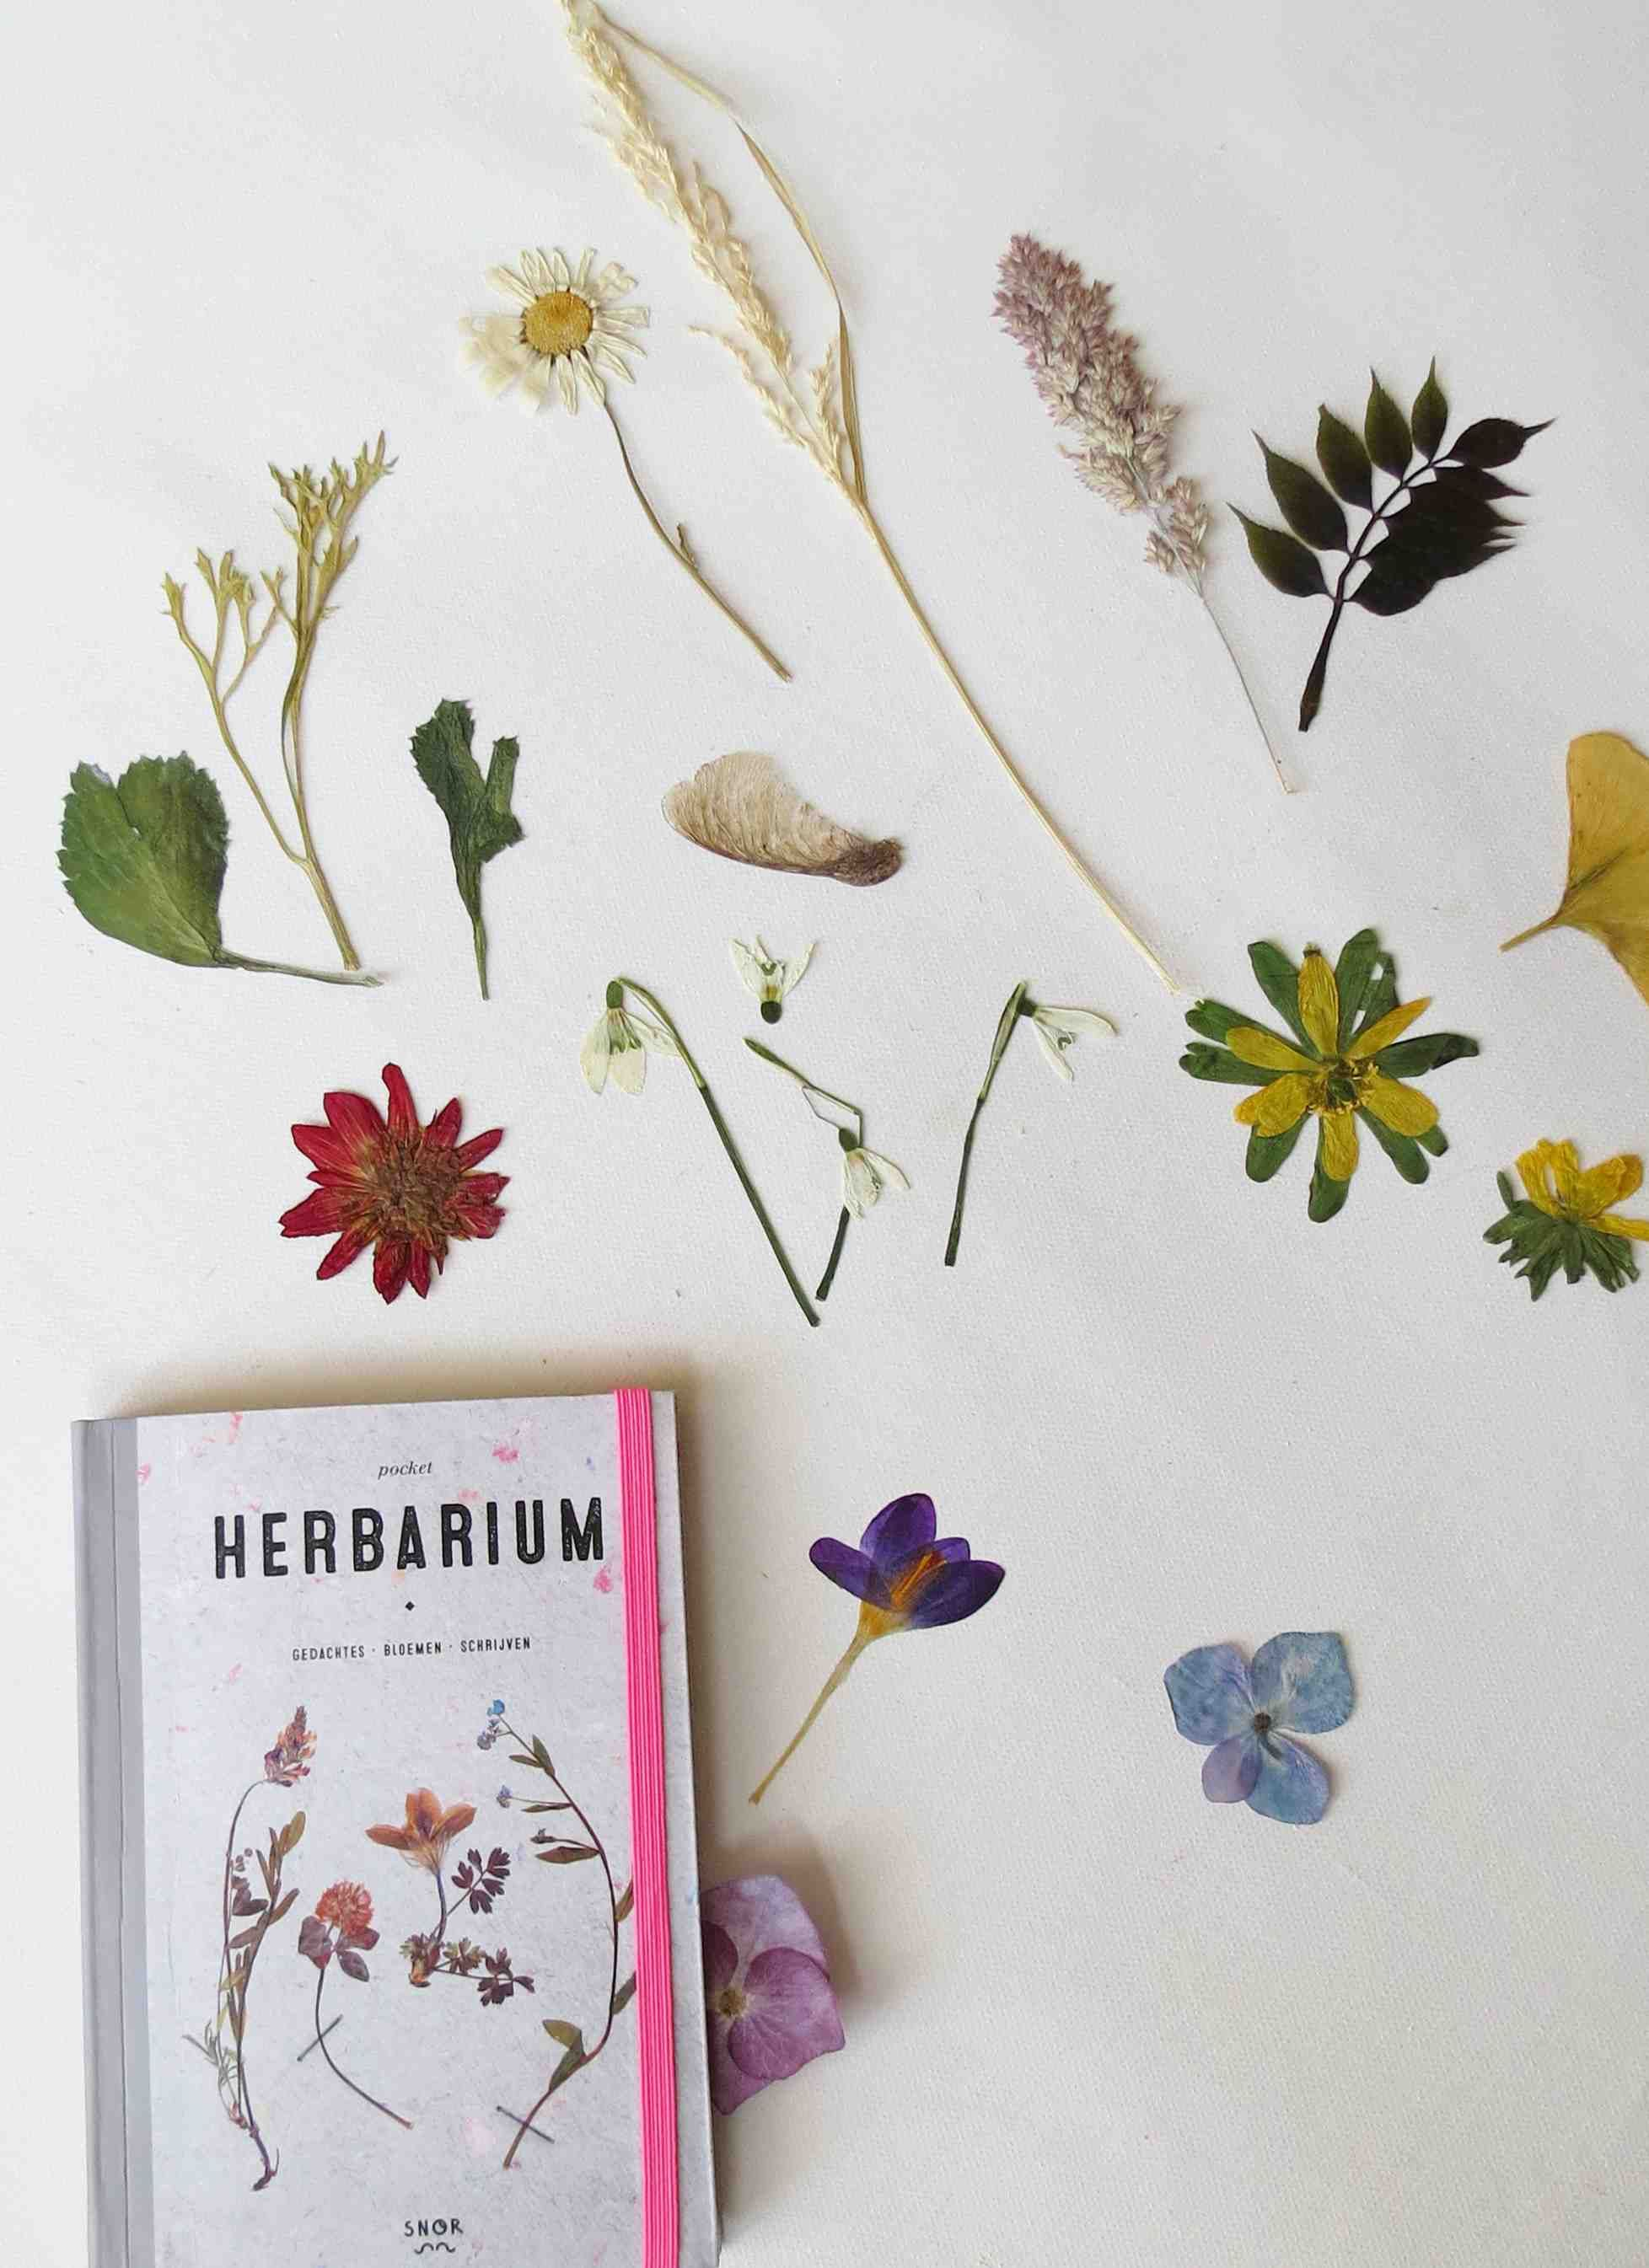 1000+ images about Herbarium on Pinterest